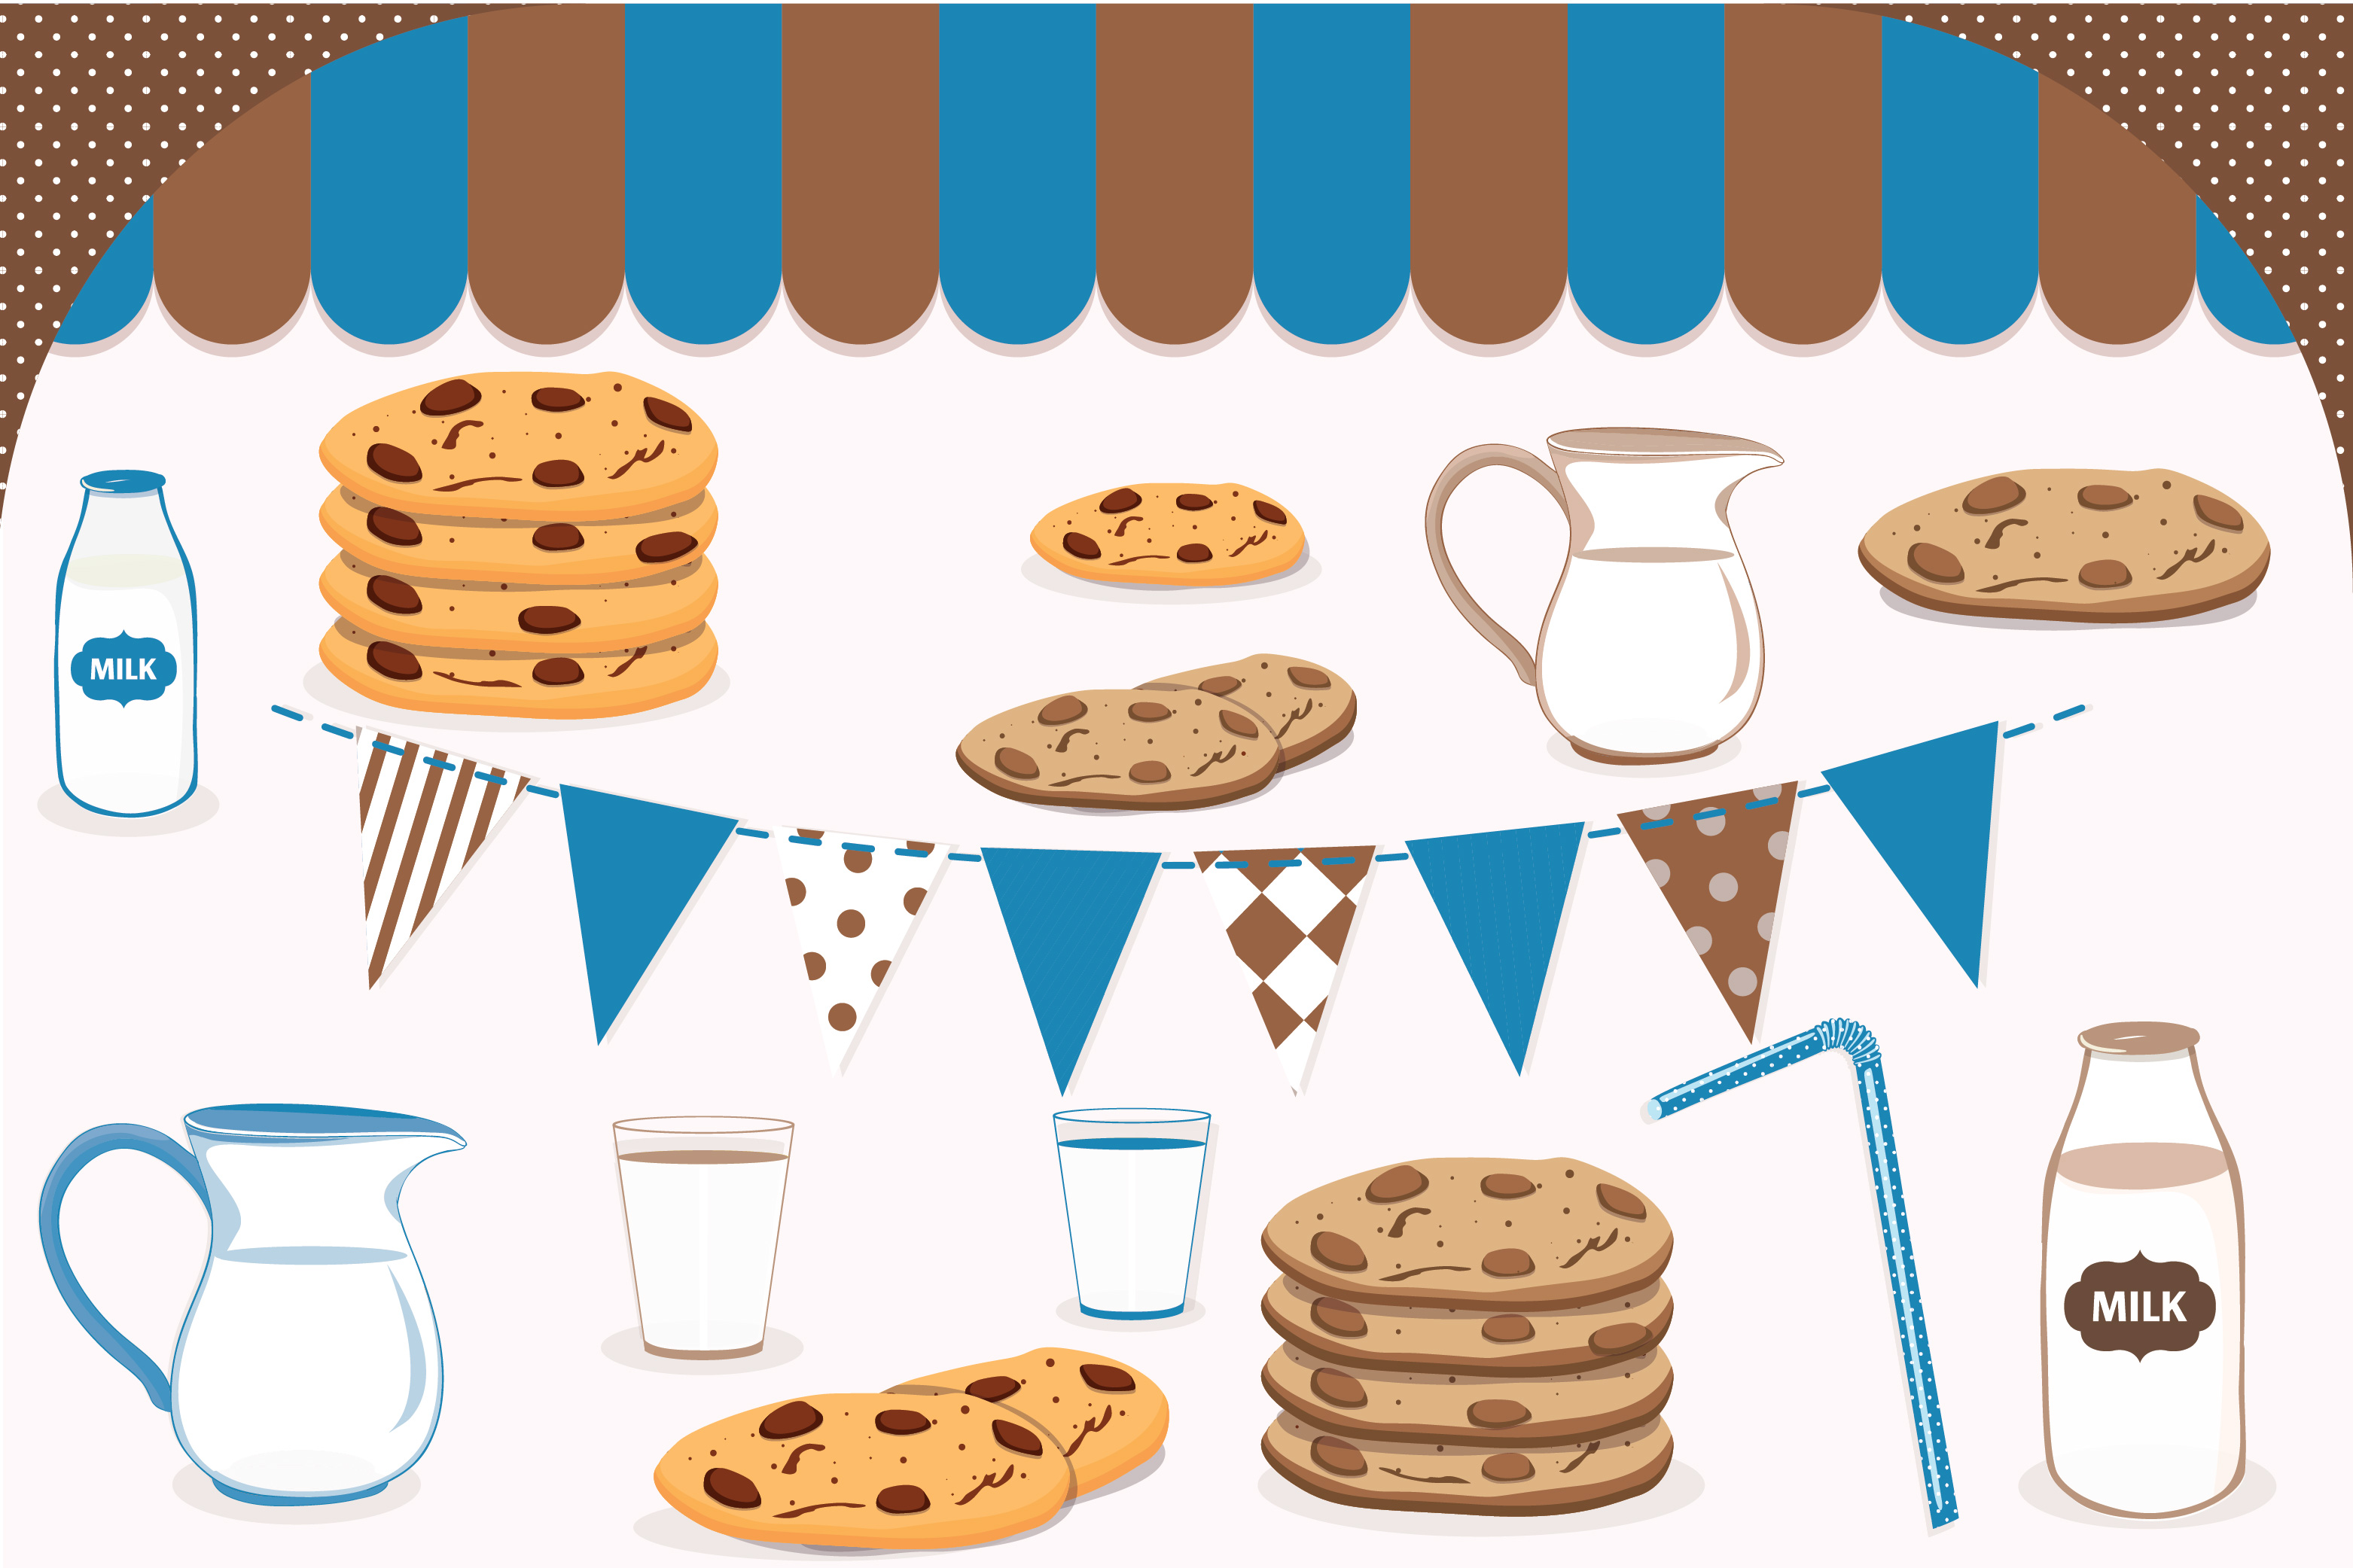 Cookies and milk clipart png freeuse Milk and cookies clipart, Milk and cookies graphics png freeuse